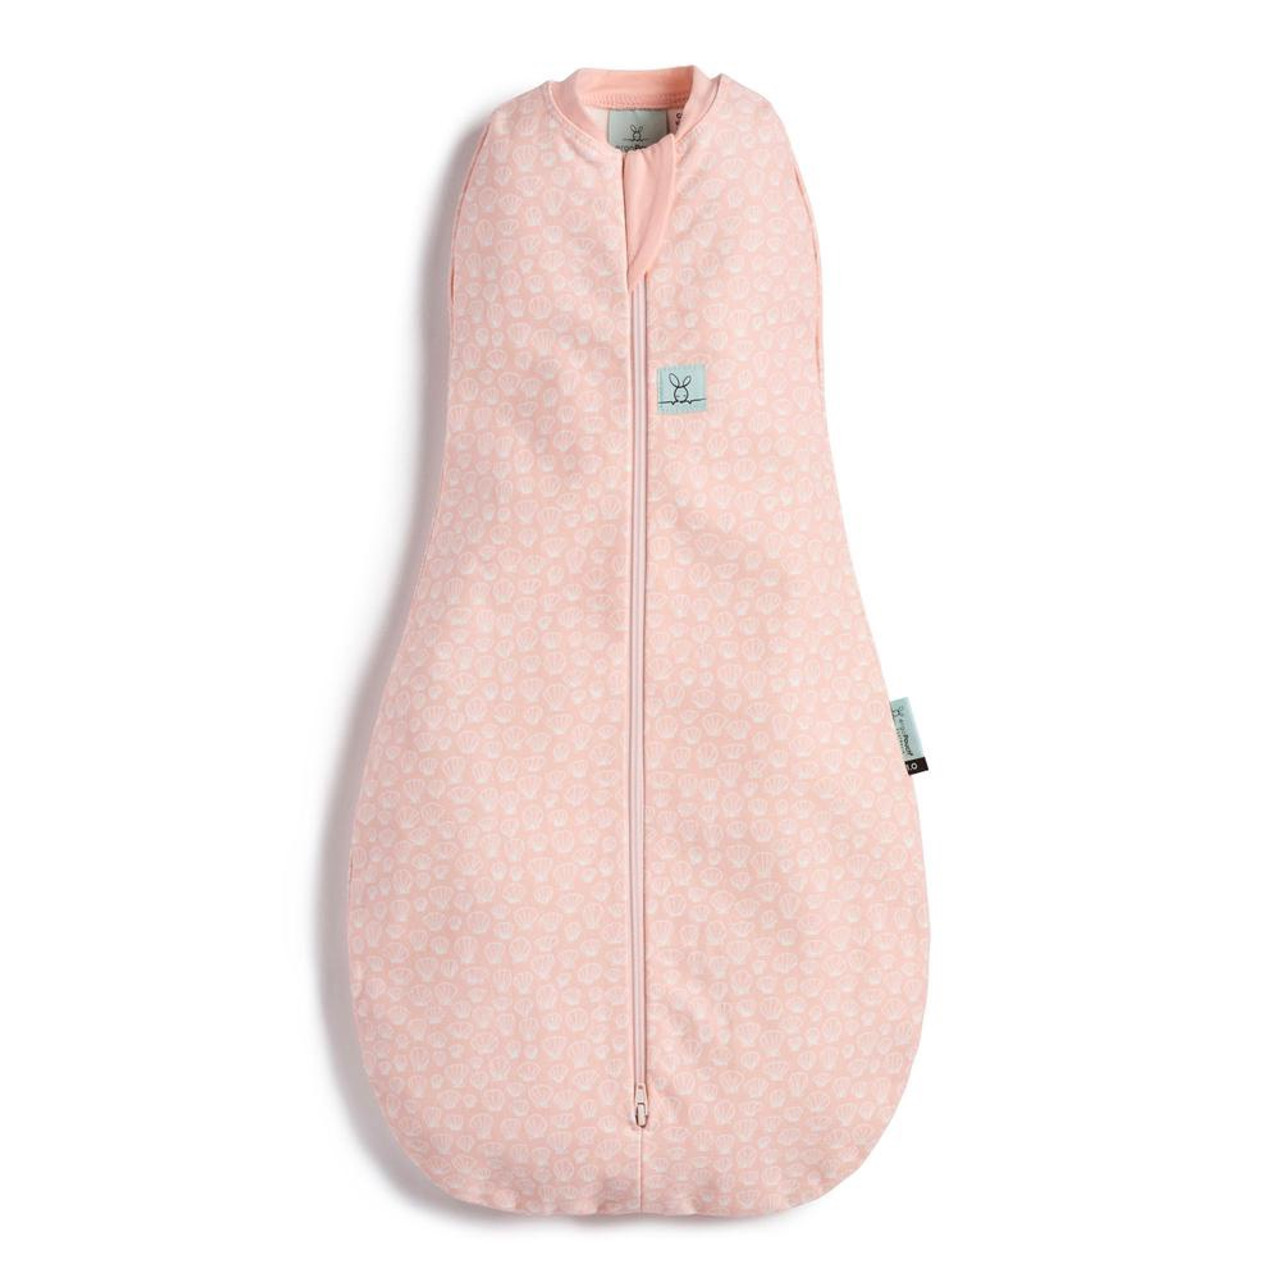 ergoPouch Cocoon Swaddle Bag 0.2 Tog 6-12 Months at Baby Barn Discounts ergoPouch lightweight swaddle cocoon style for hot summer nights.